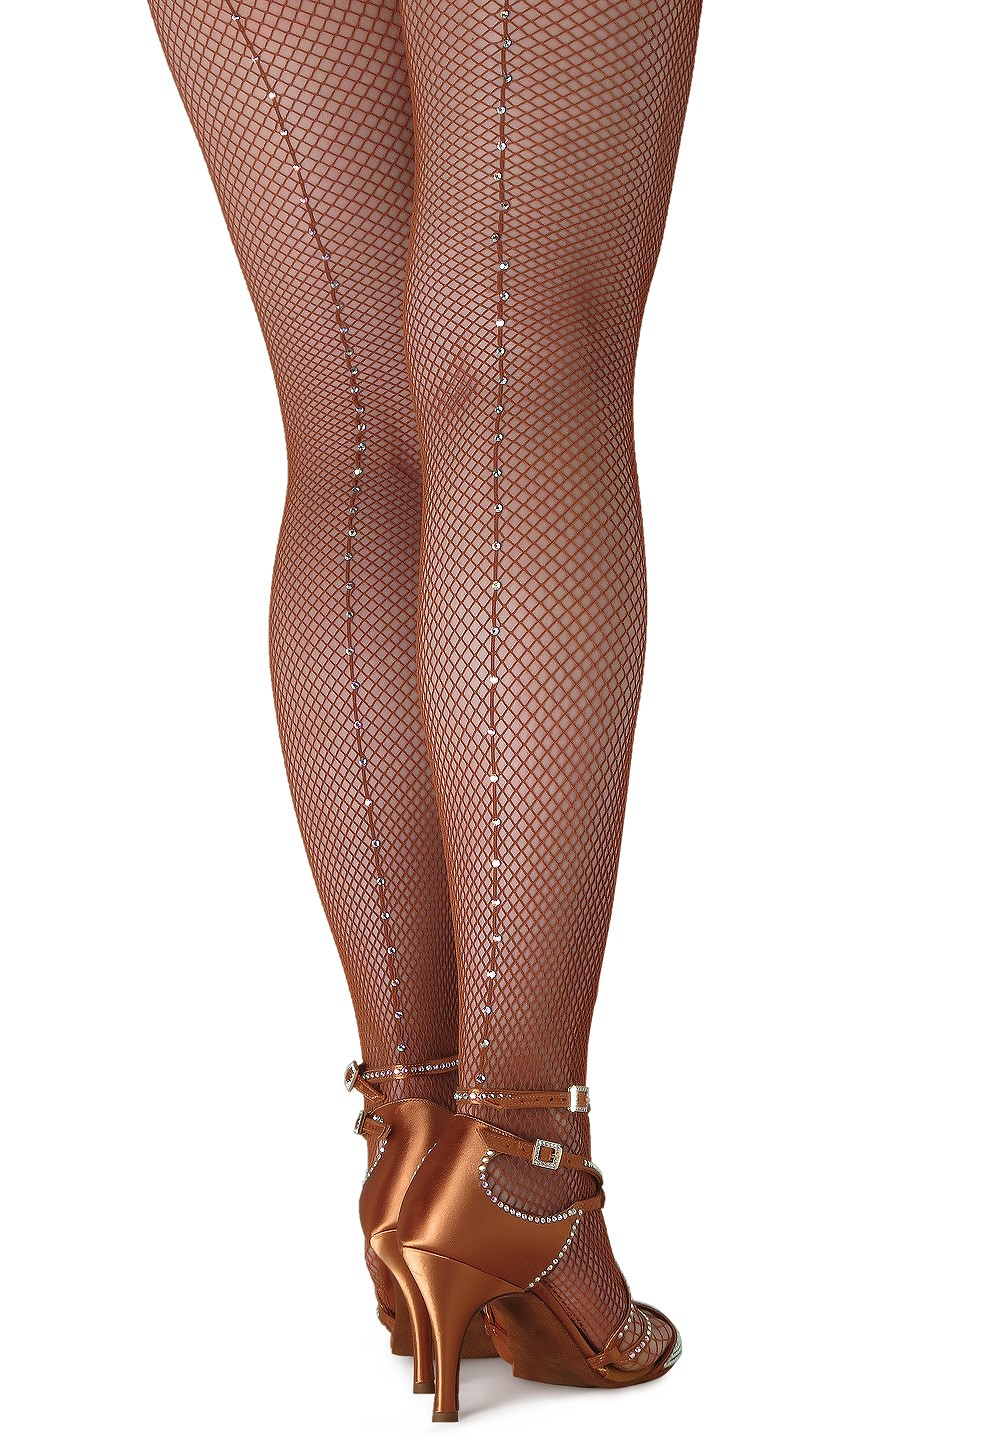 19cb68b69b305 Crystallized Fishnet Tights - Swarovski Rhinestones on Capezio Tight.  $34.95. 5 ...